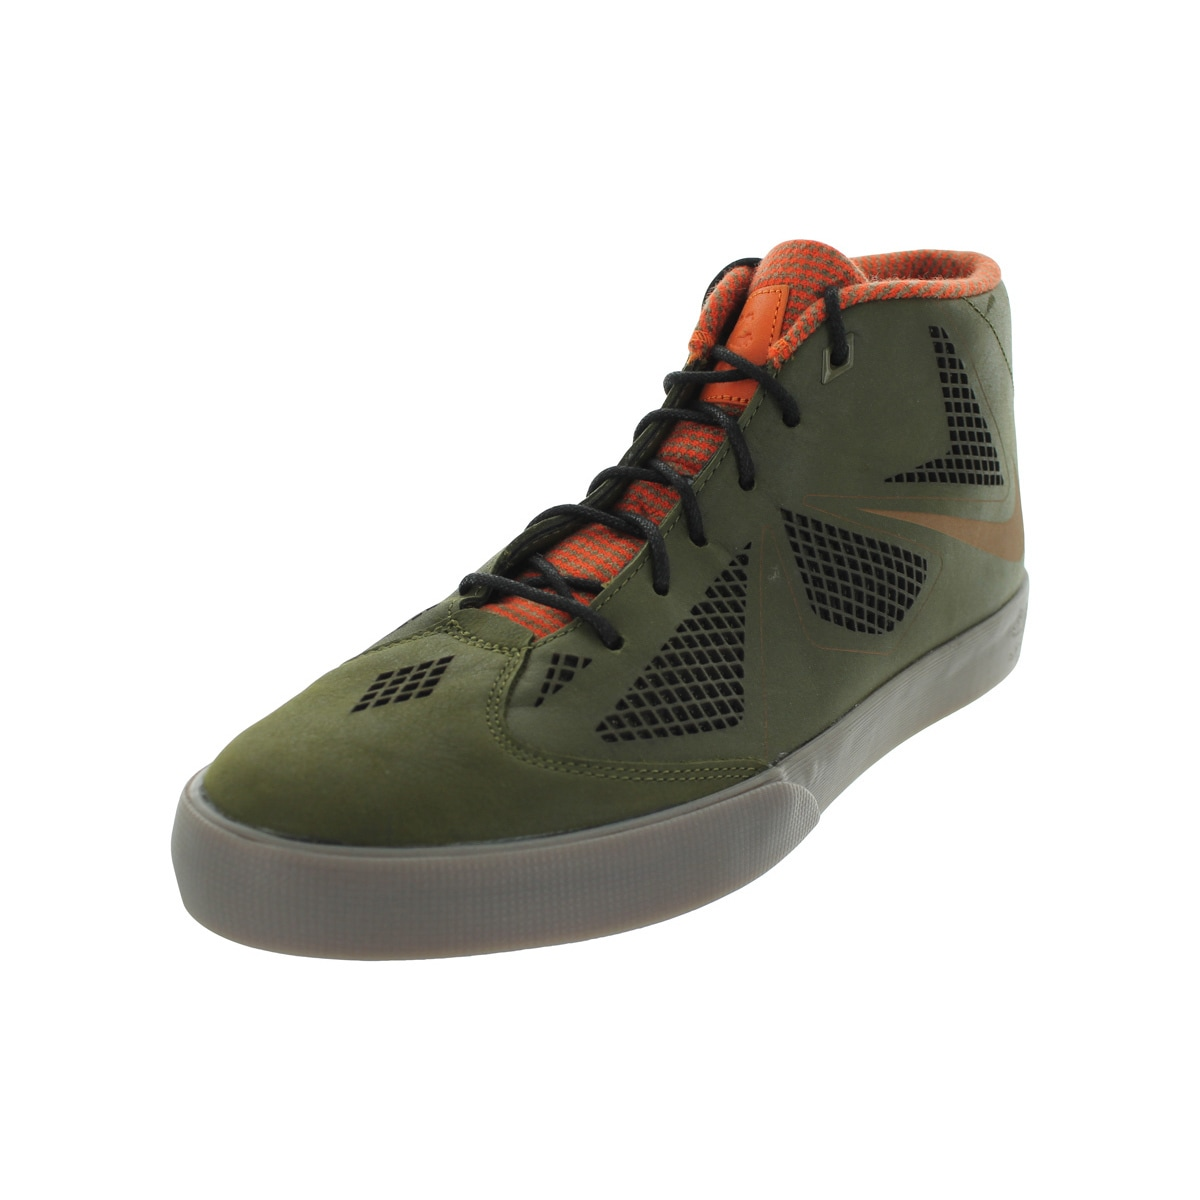 Nike Men's Lebron X NSW Lifestyle Green Leather Casual Sh...